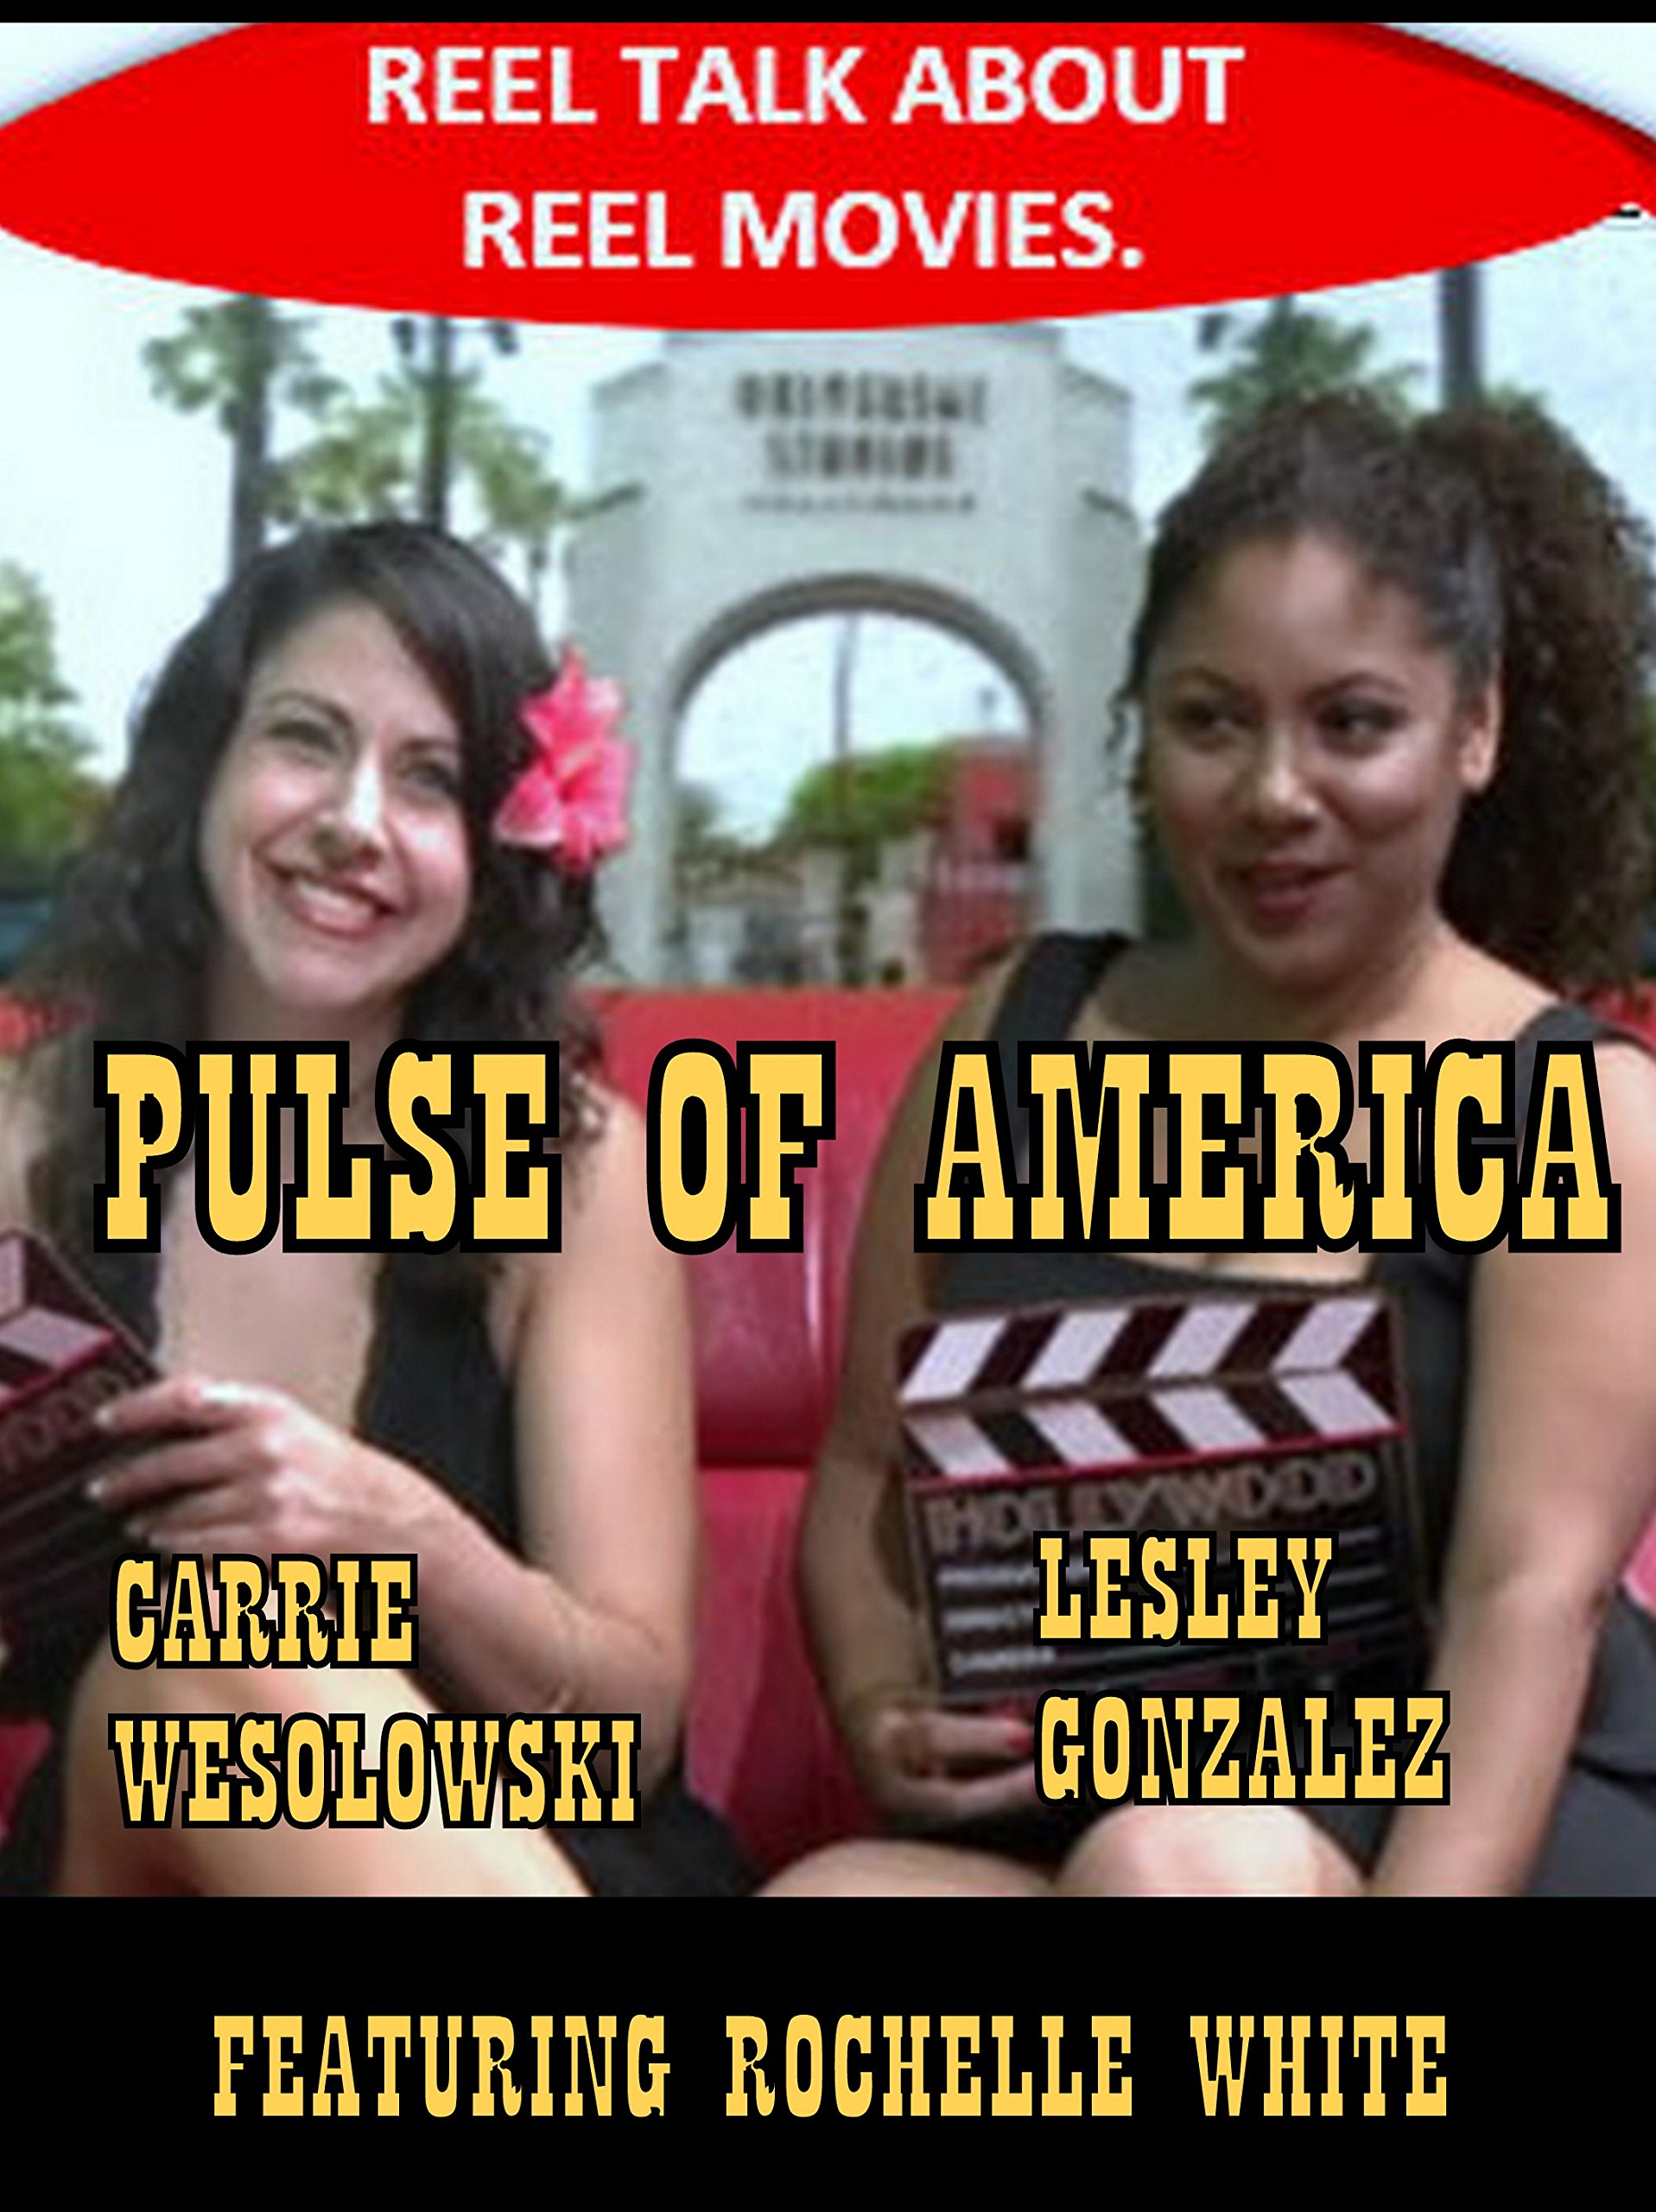 Reel Talk about Reel Movies Pulse of America with Lesley and Carrie featuring Rochelle White